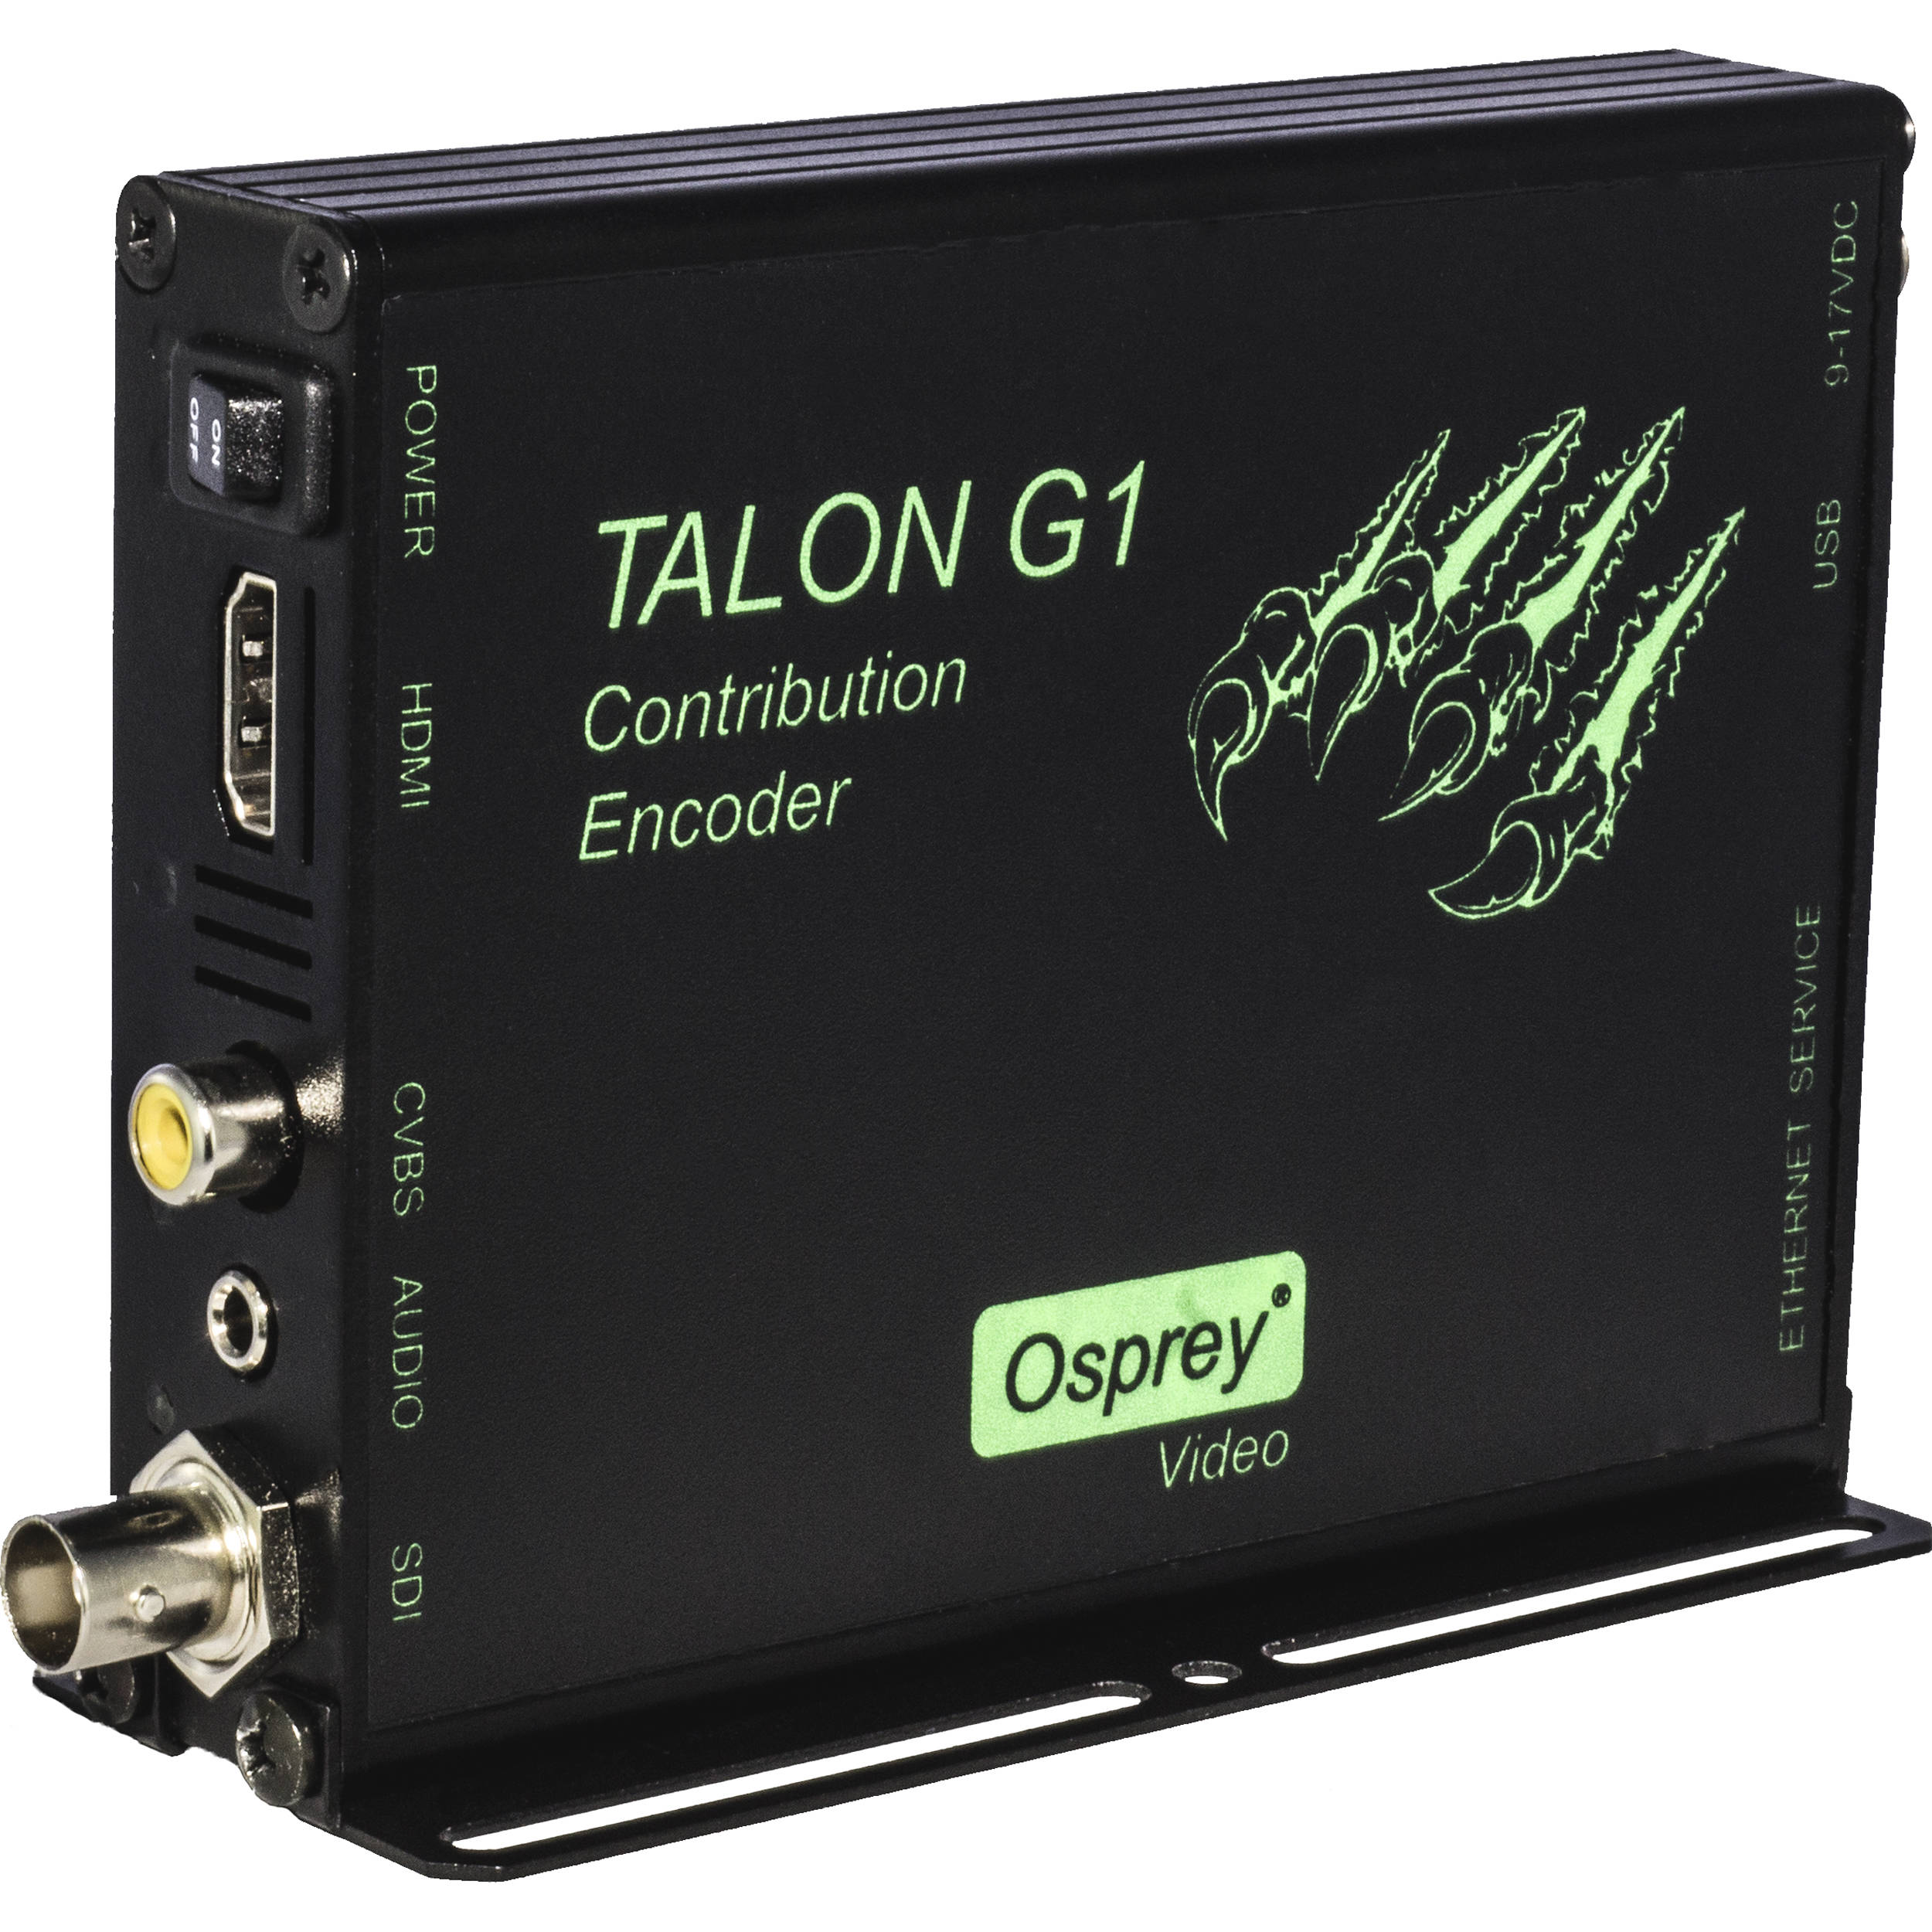 Gdi Delivering Value Osprey Video Analog Circuits For Portable Electronics Cactus Semiconductor Talon G1 Hardware Encoder